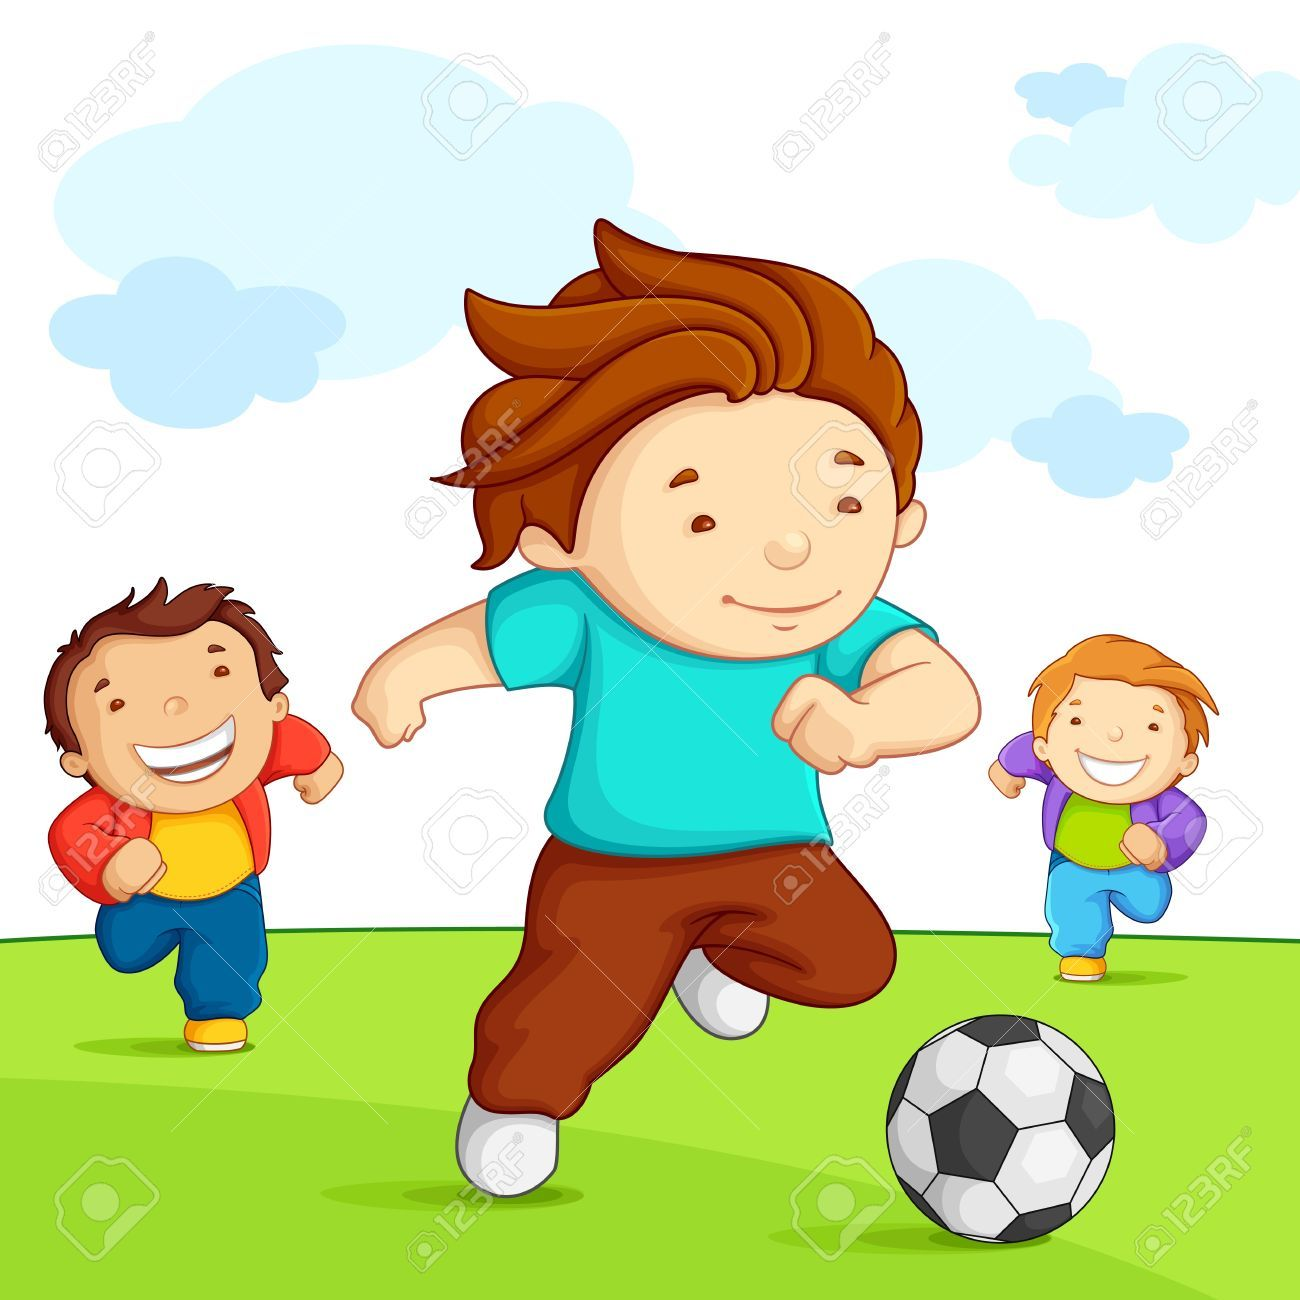 Boys playing soccer clipart image transparent library Boys playing soccer clipart 4 » Clipart Portal image transparent library